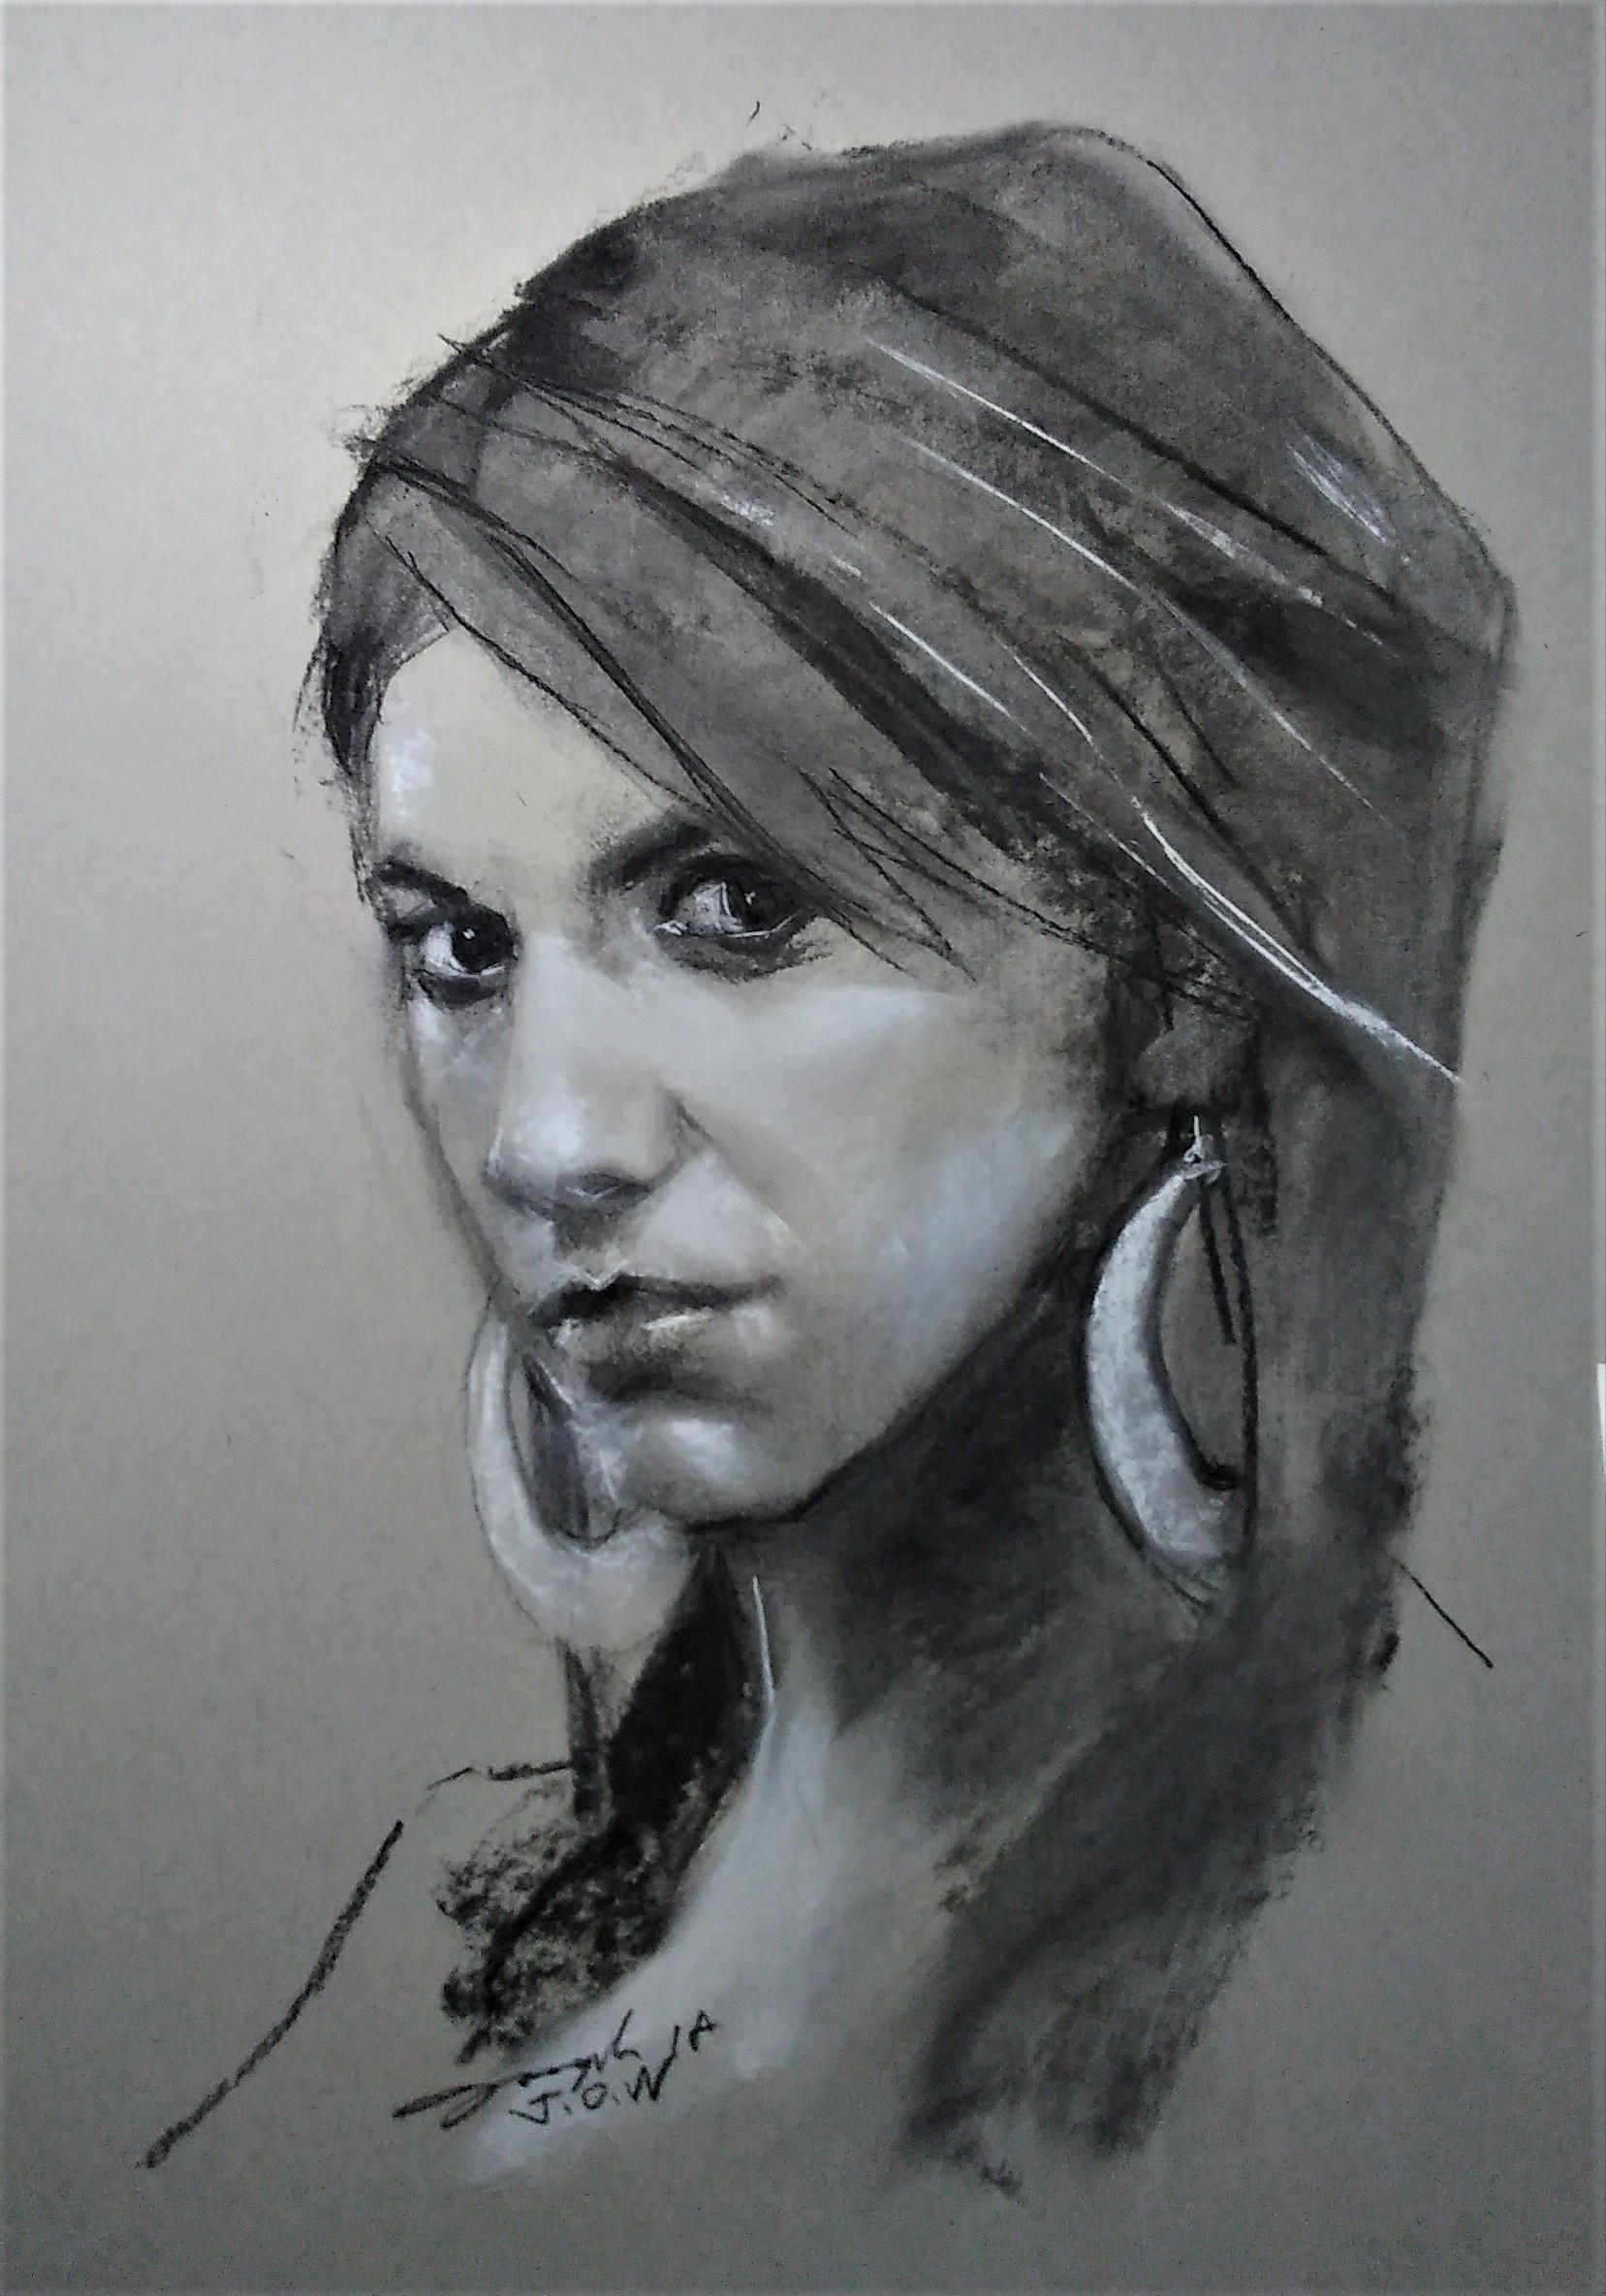 Charcoal on paper, 16 x 20